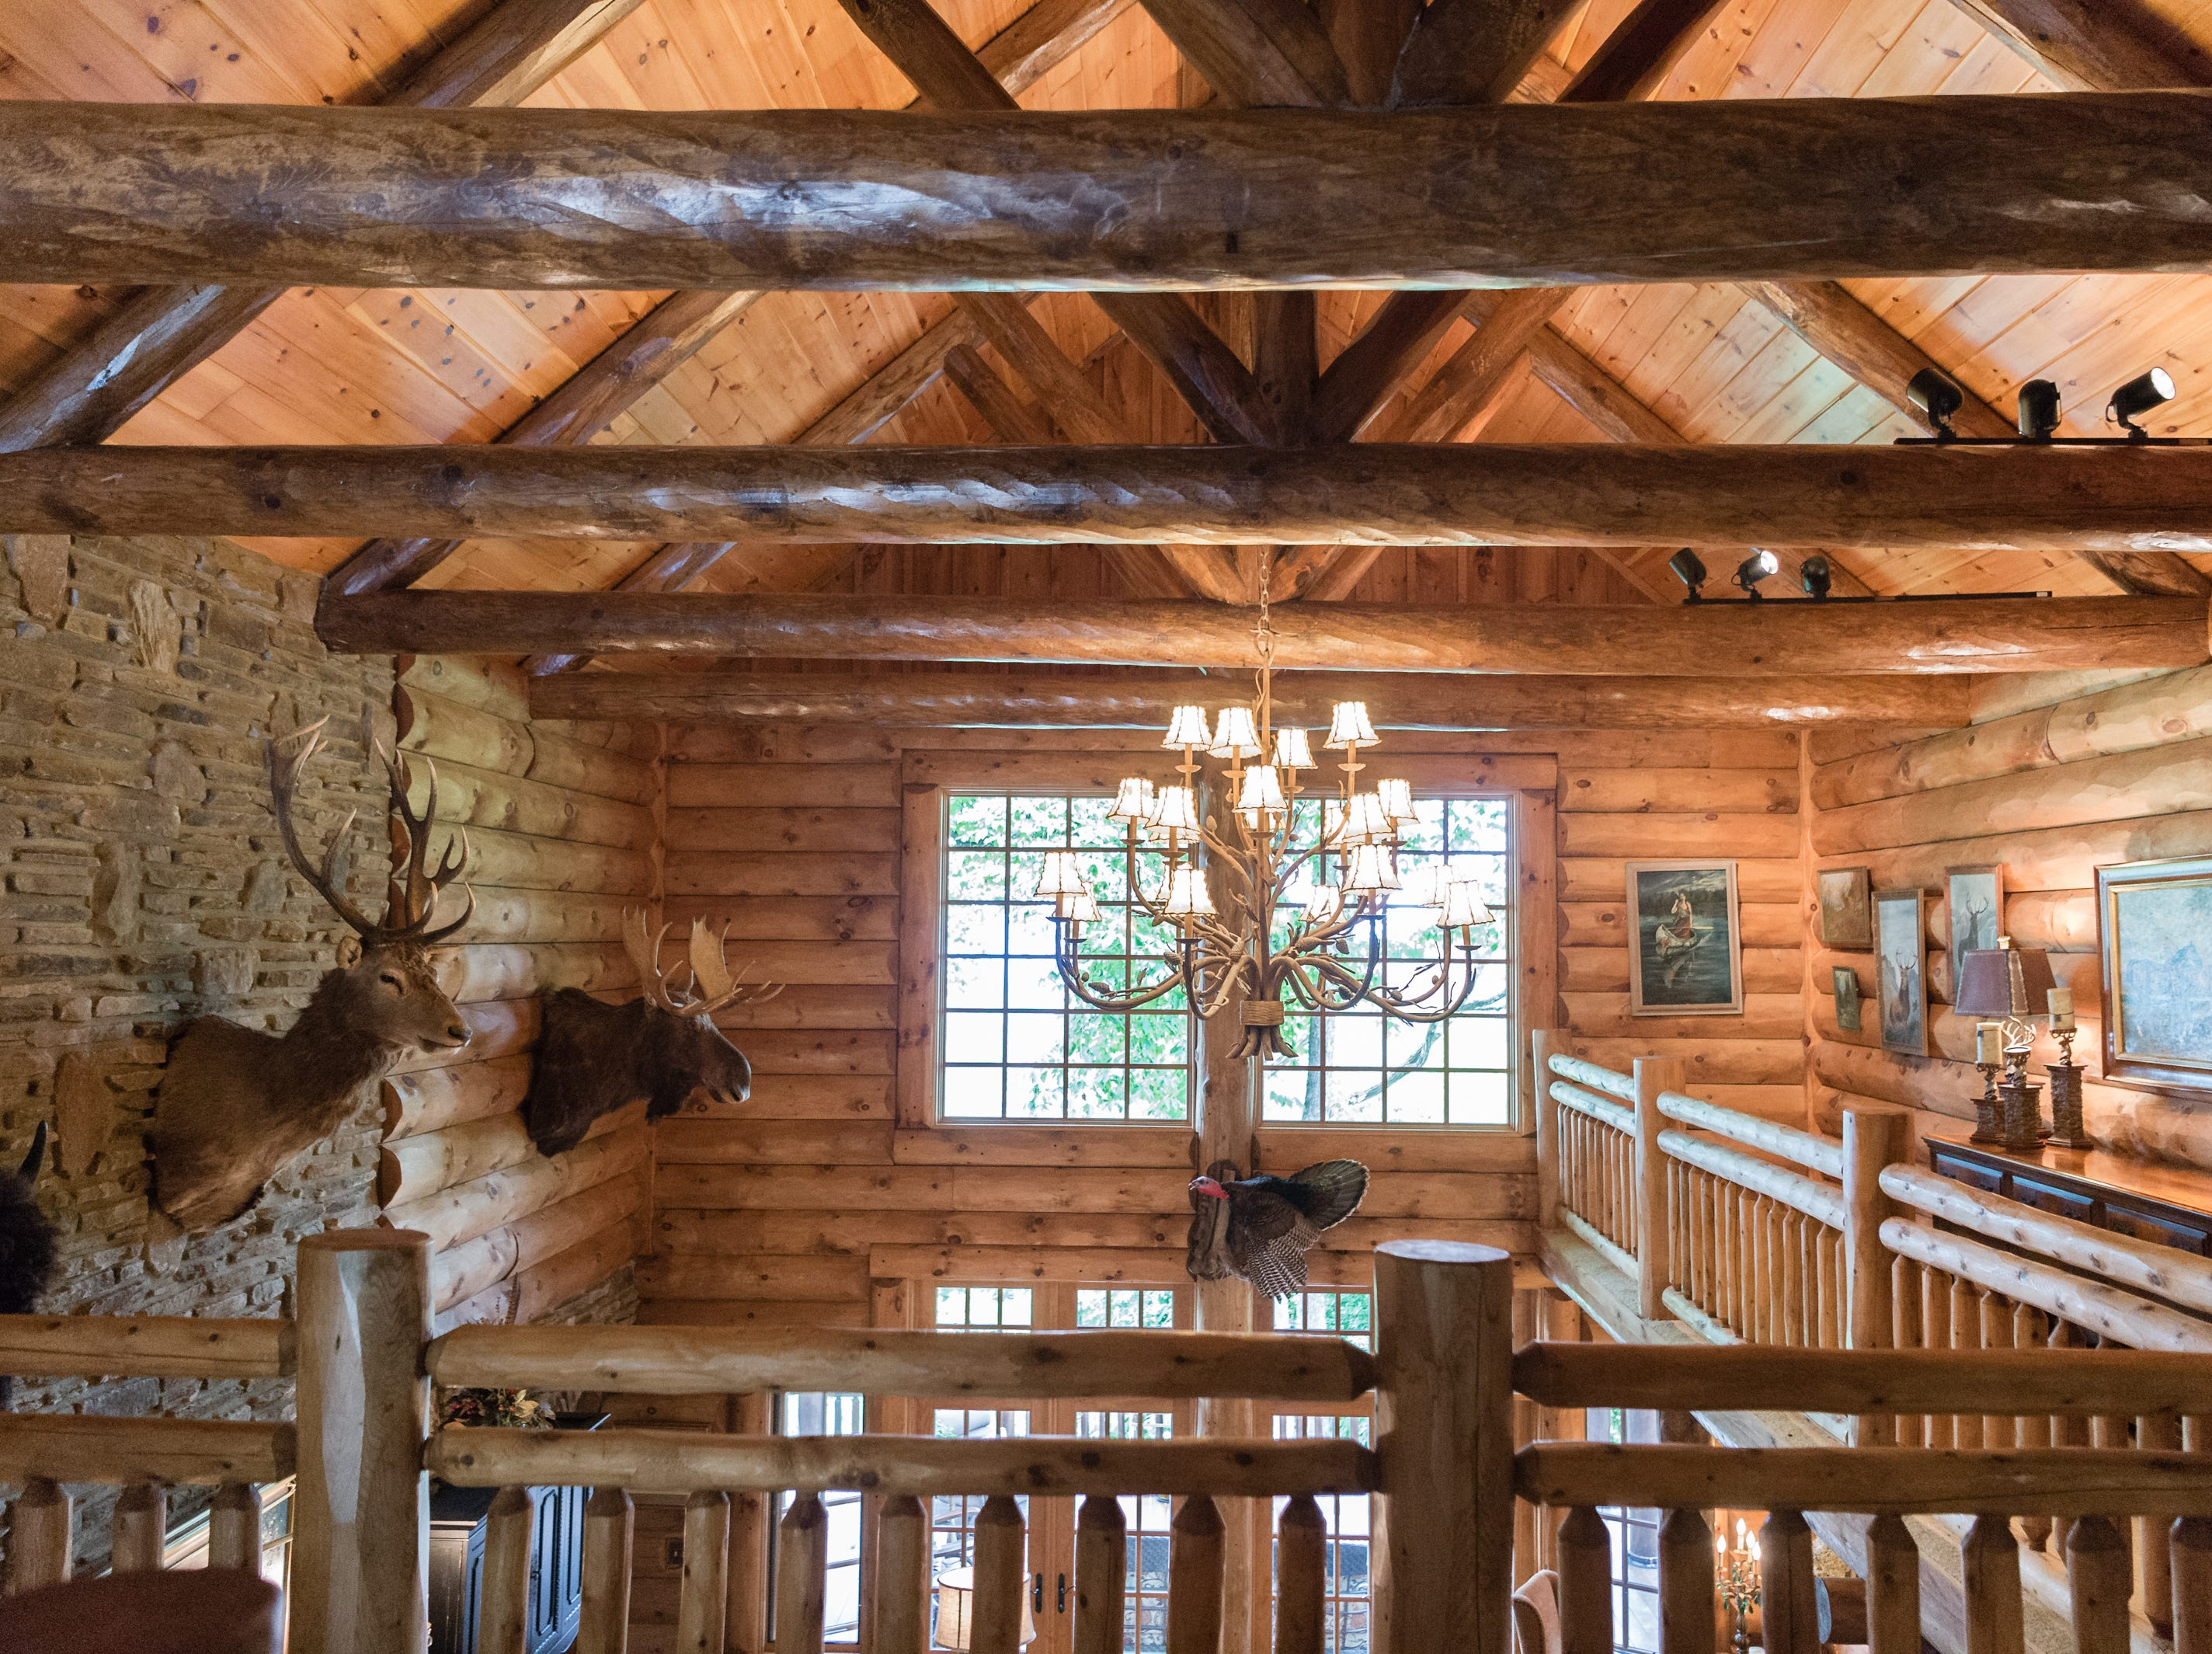 A balcony overlooking the great room in Dan and Belle Fangmeyer's log cabin in Waynesville.